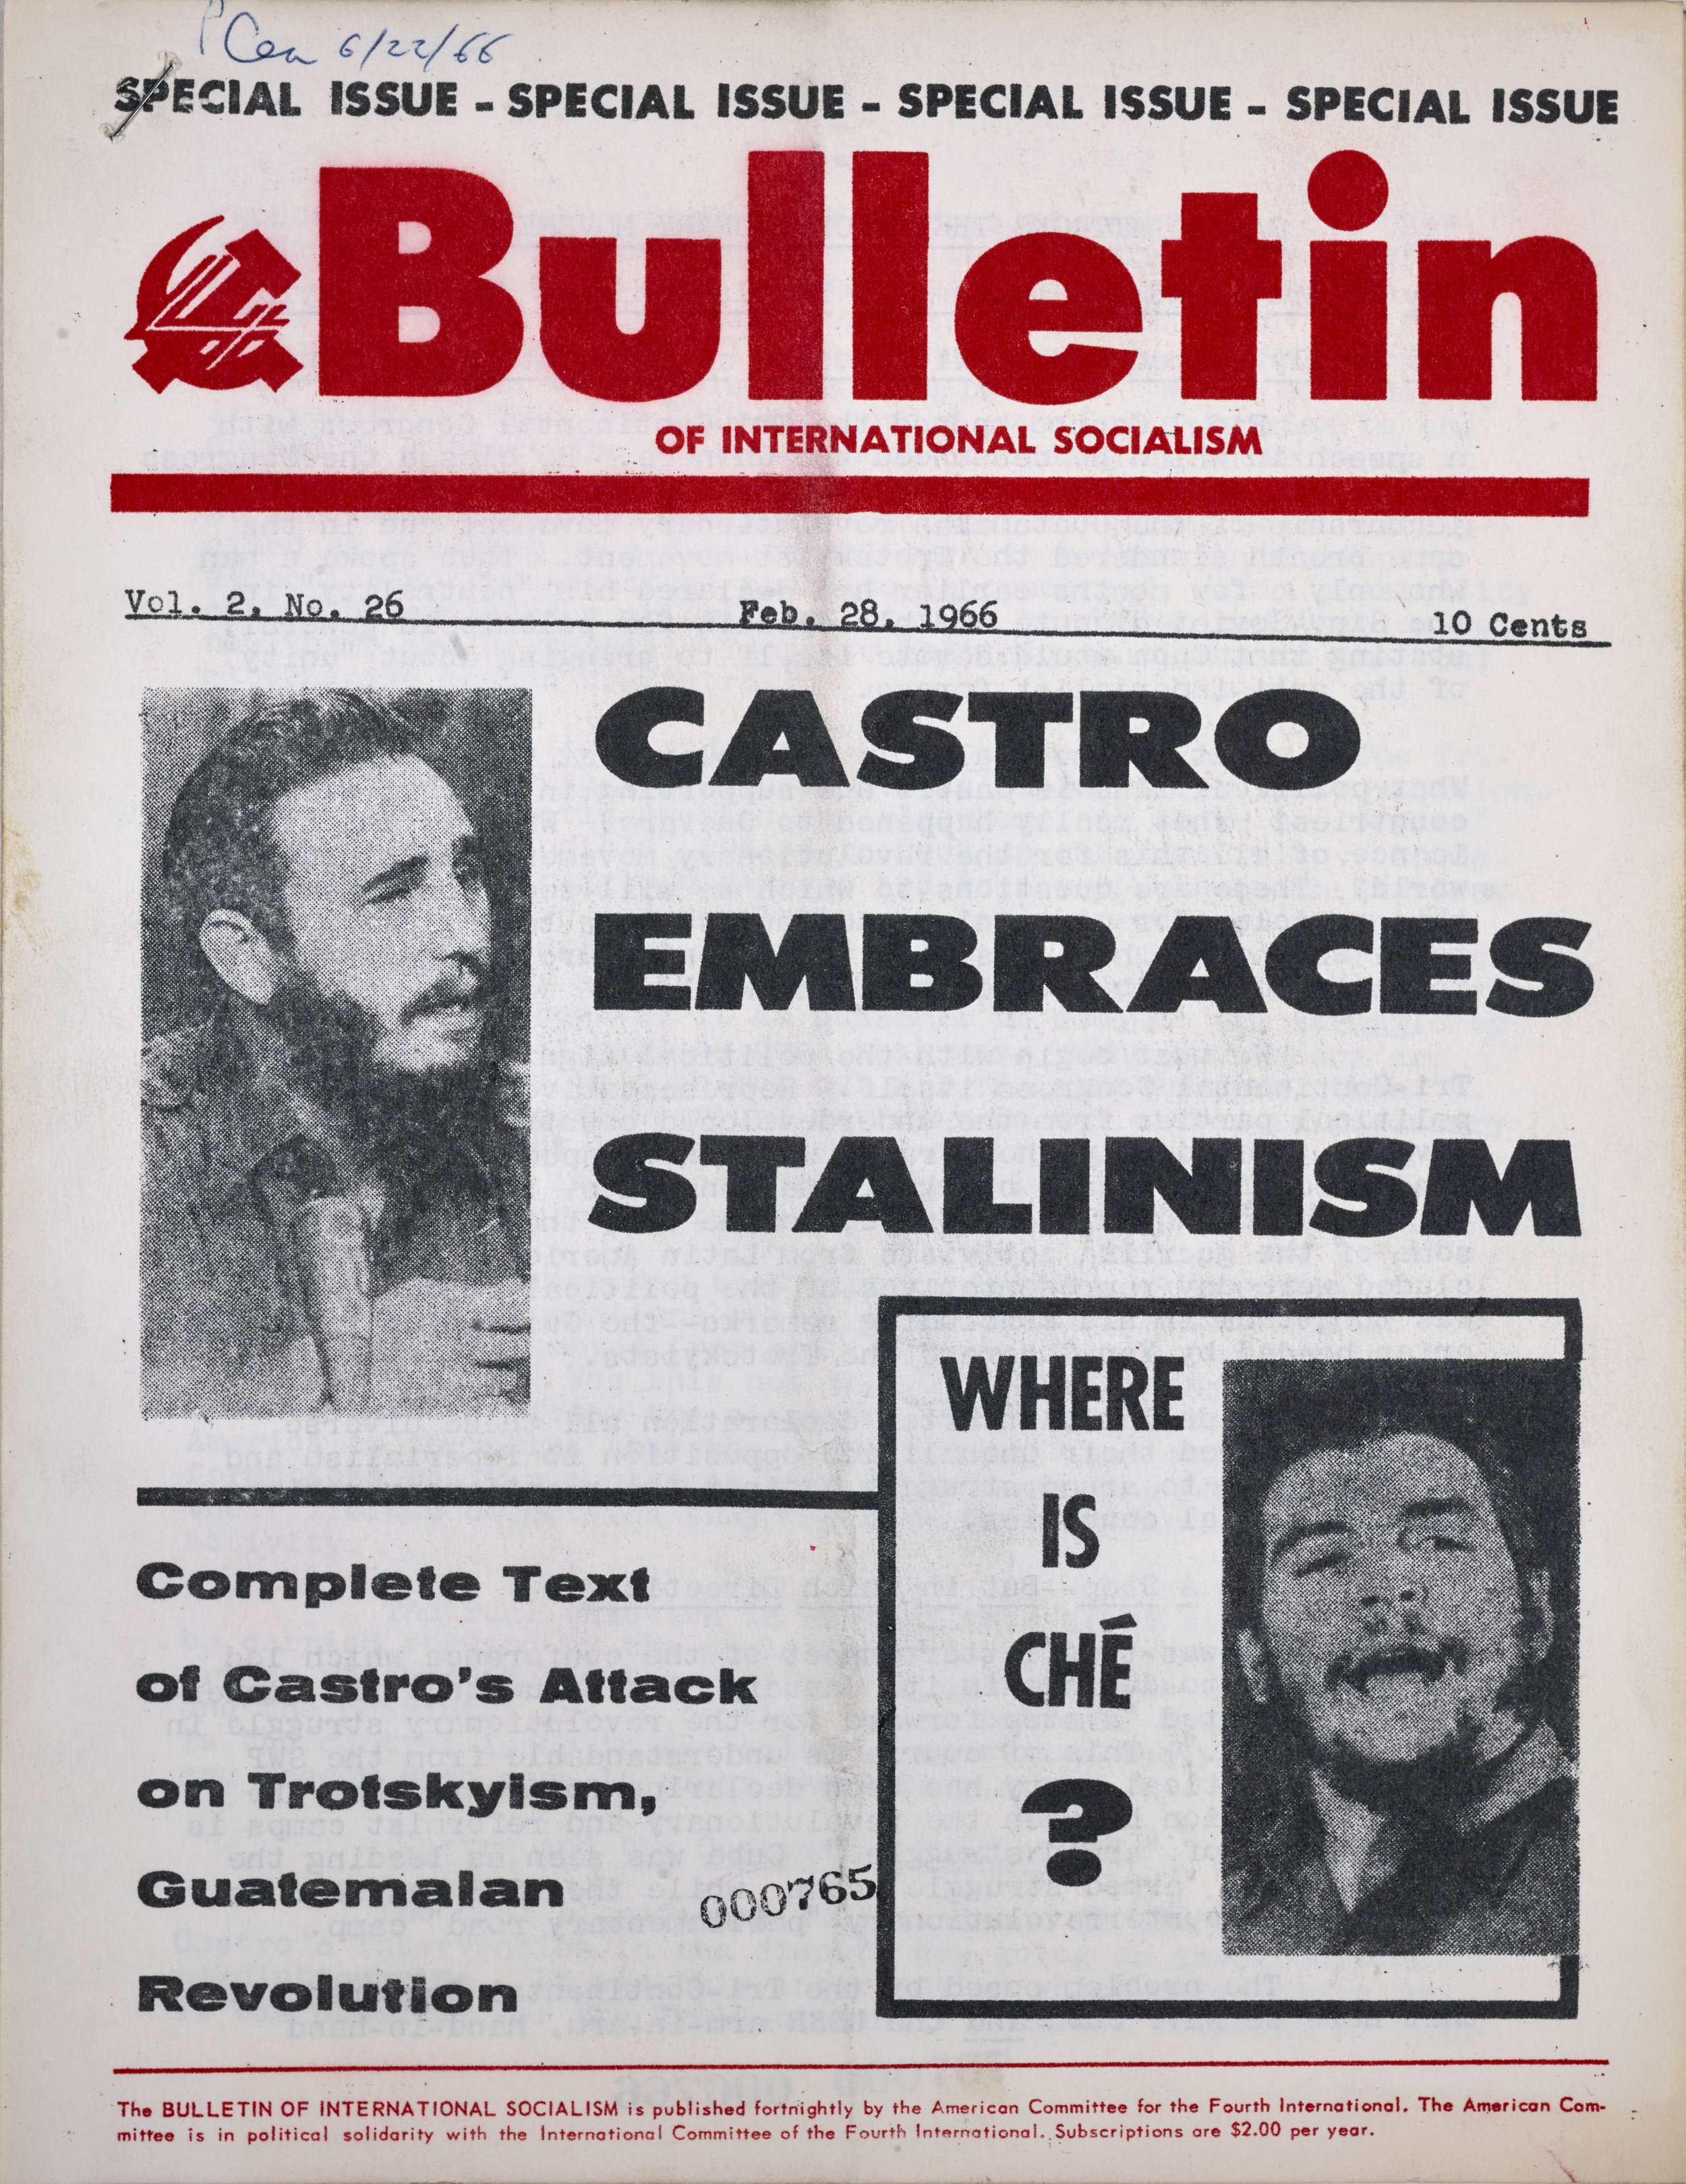 Bulletin of International Socialism, Castro Embraces Stalinism, February 28, 1966